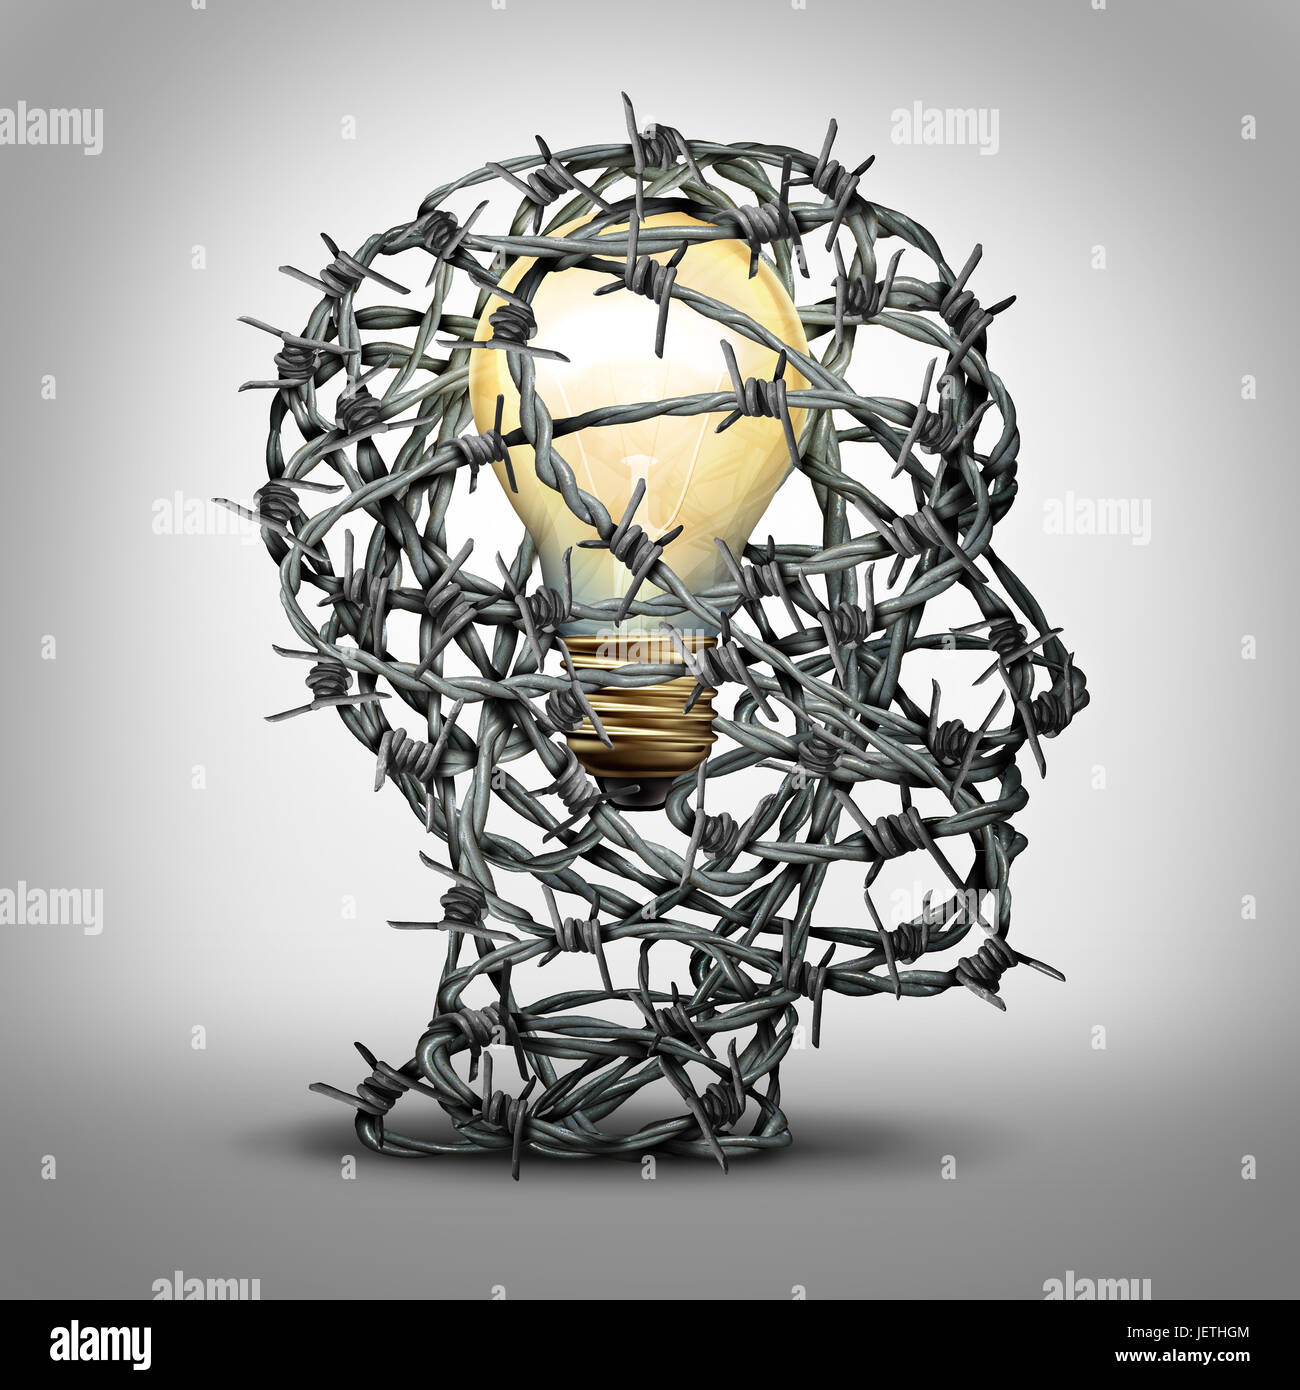 Protect your idea business thinking concept as a group of barbed wire shaped as a human head with an illuminated - Stock Image